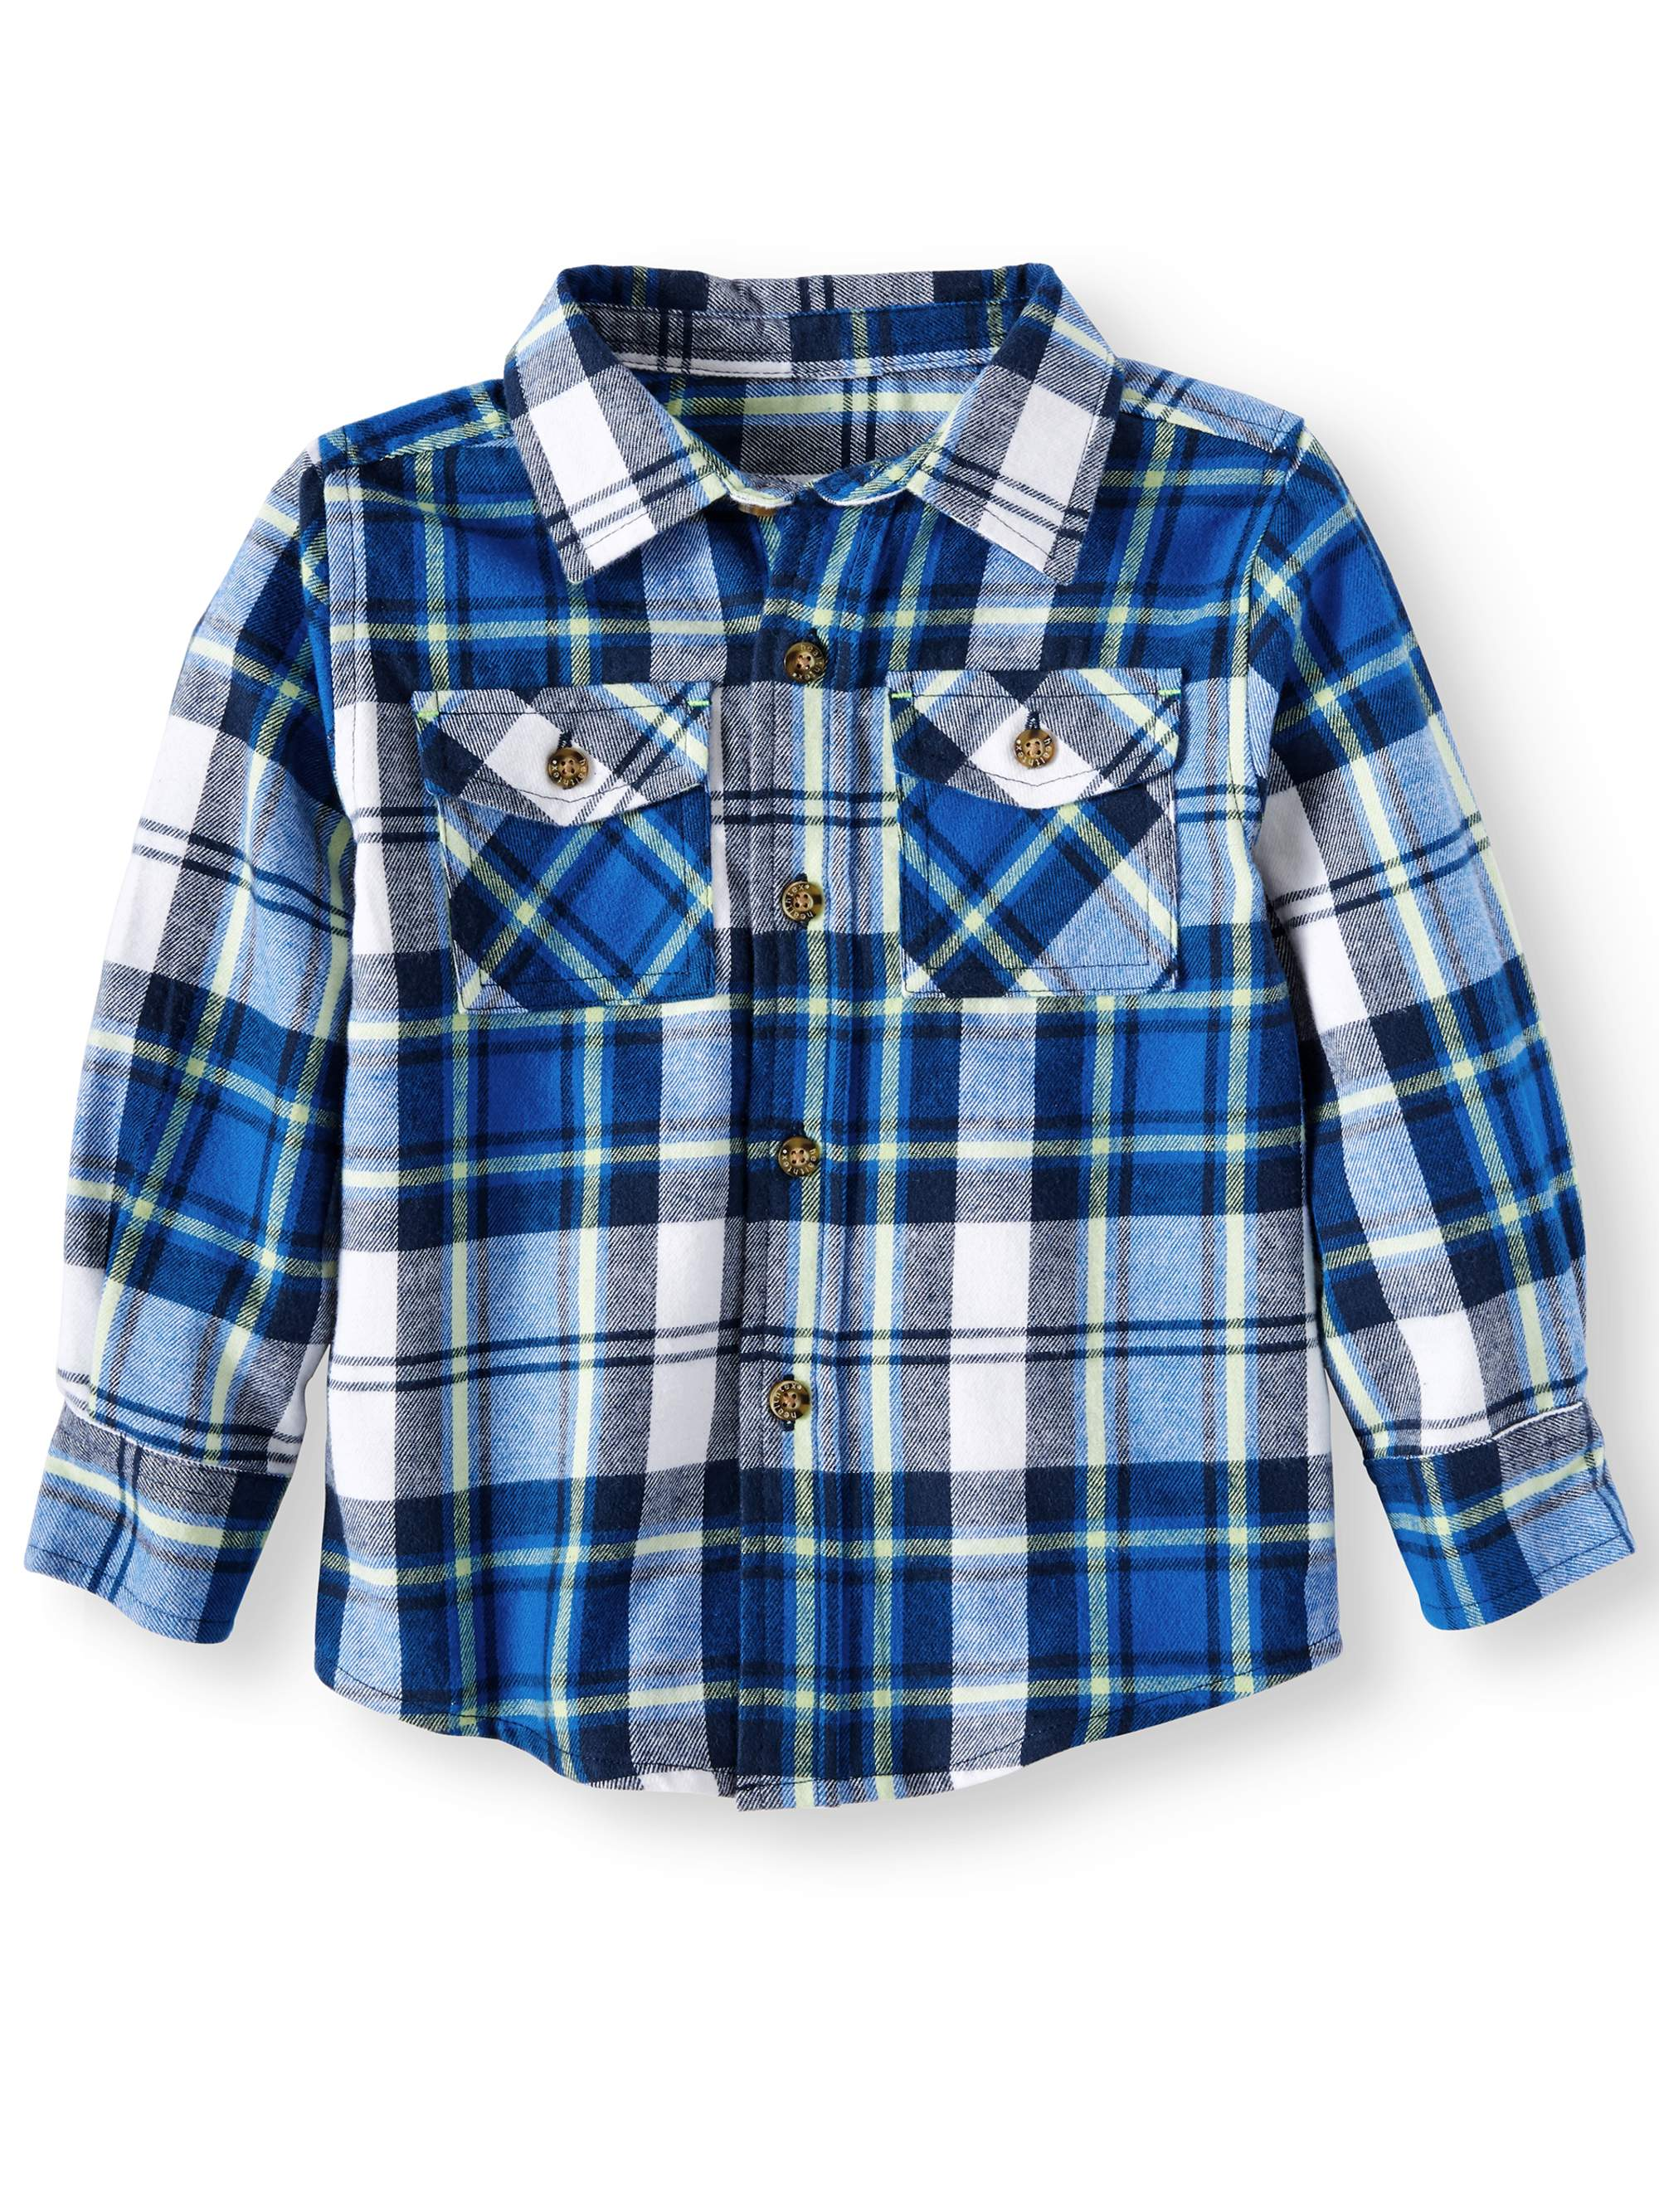 Ht Boys L/s Flannel Shirt